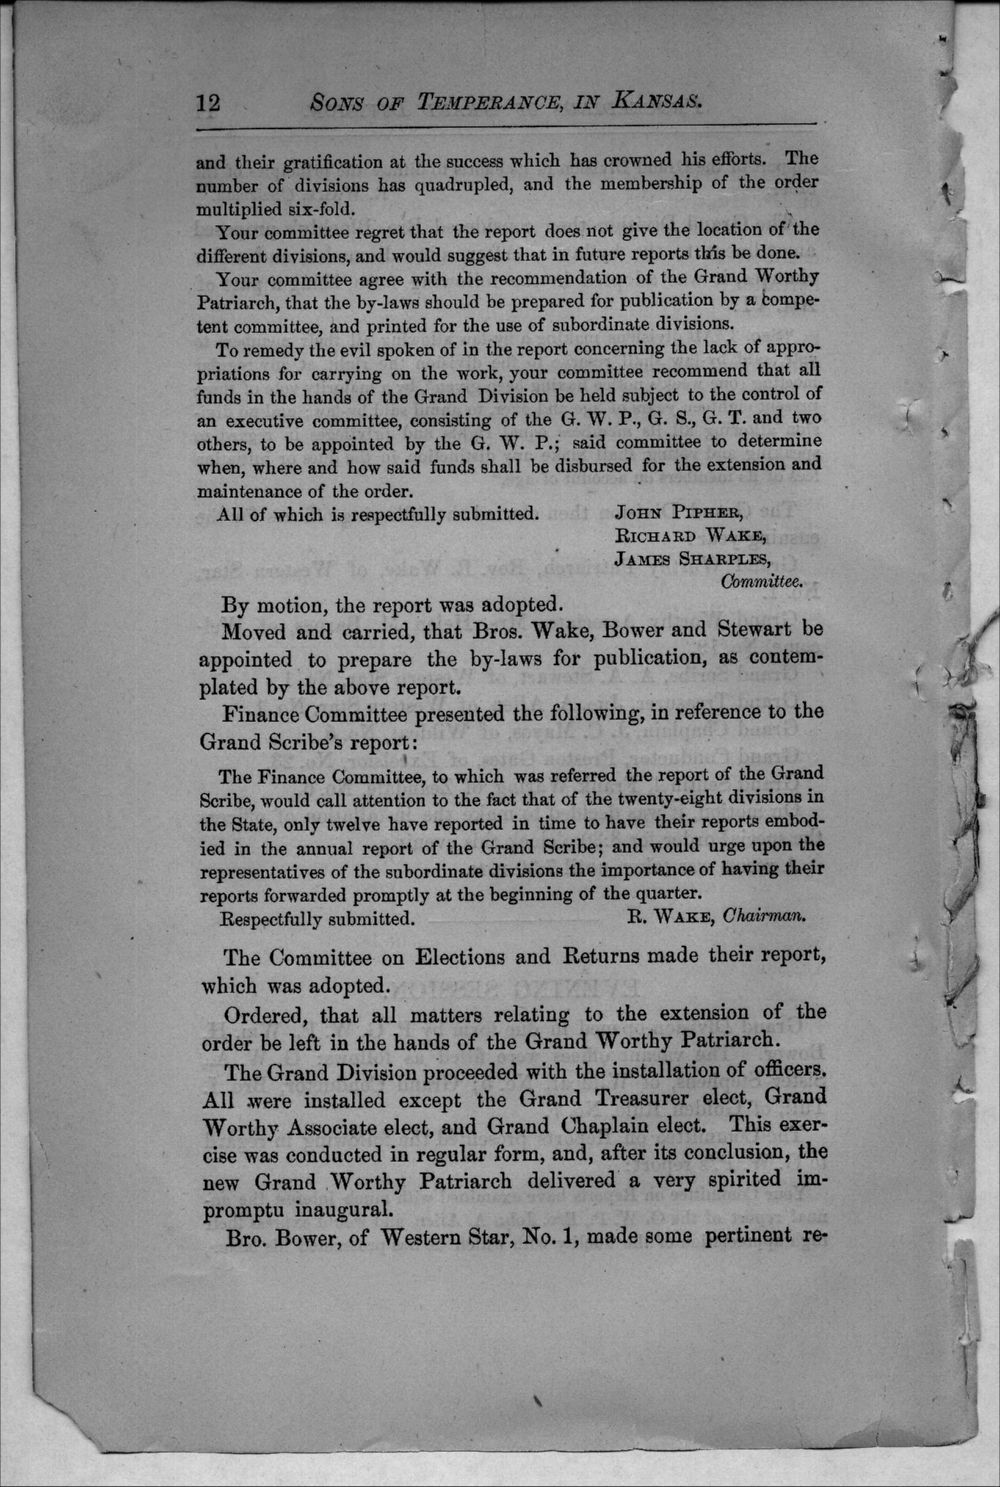 Journal of proceedings of the Grand Division of the Sons of Temperance of Kansas - 12